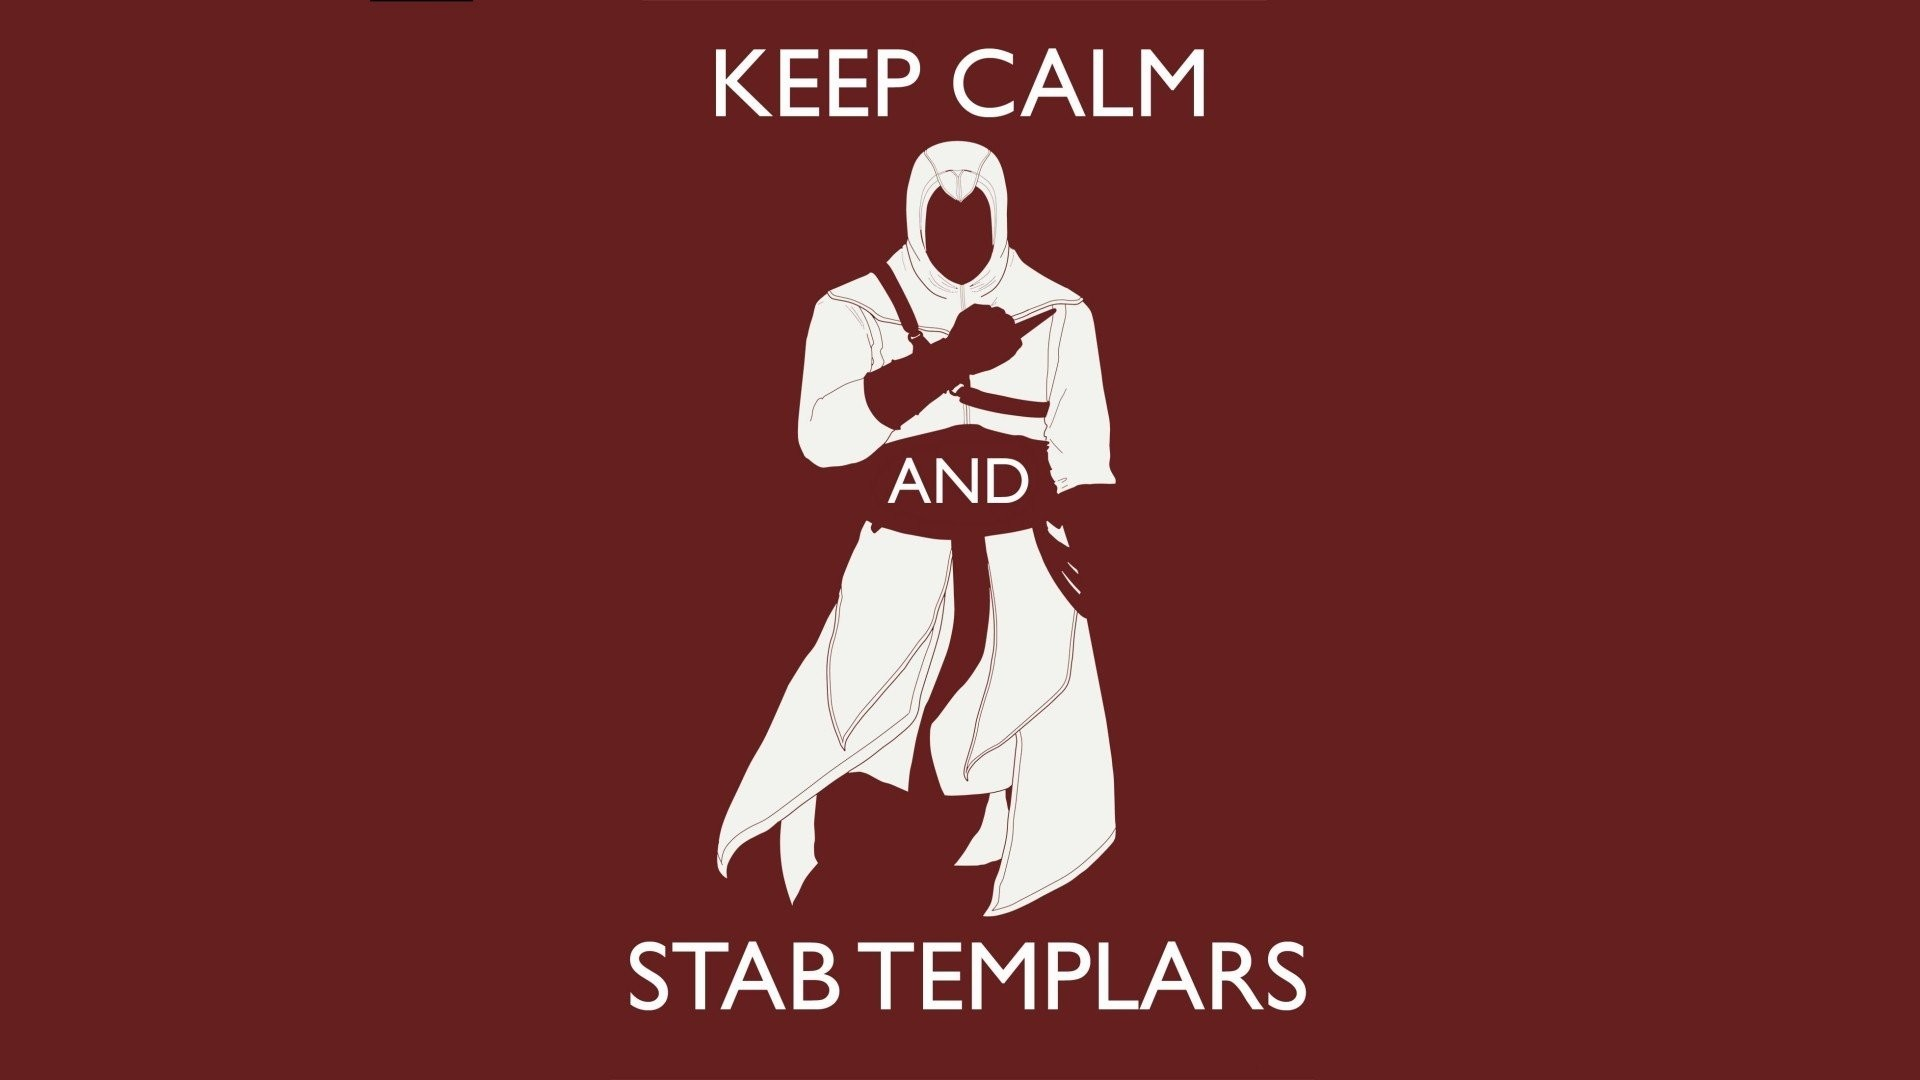 Keep Calm And Carry On Wallpaper : Keep calm and stab templars wallpaper  walldevil